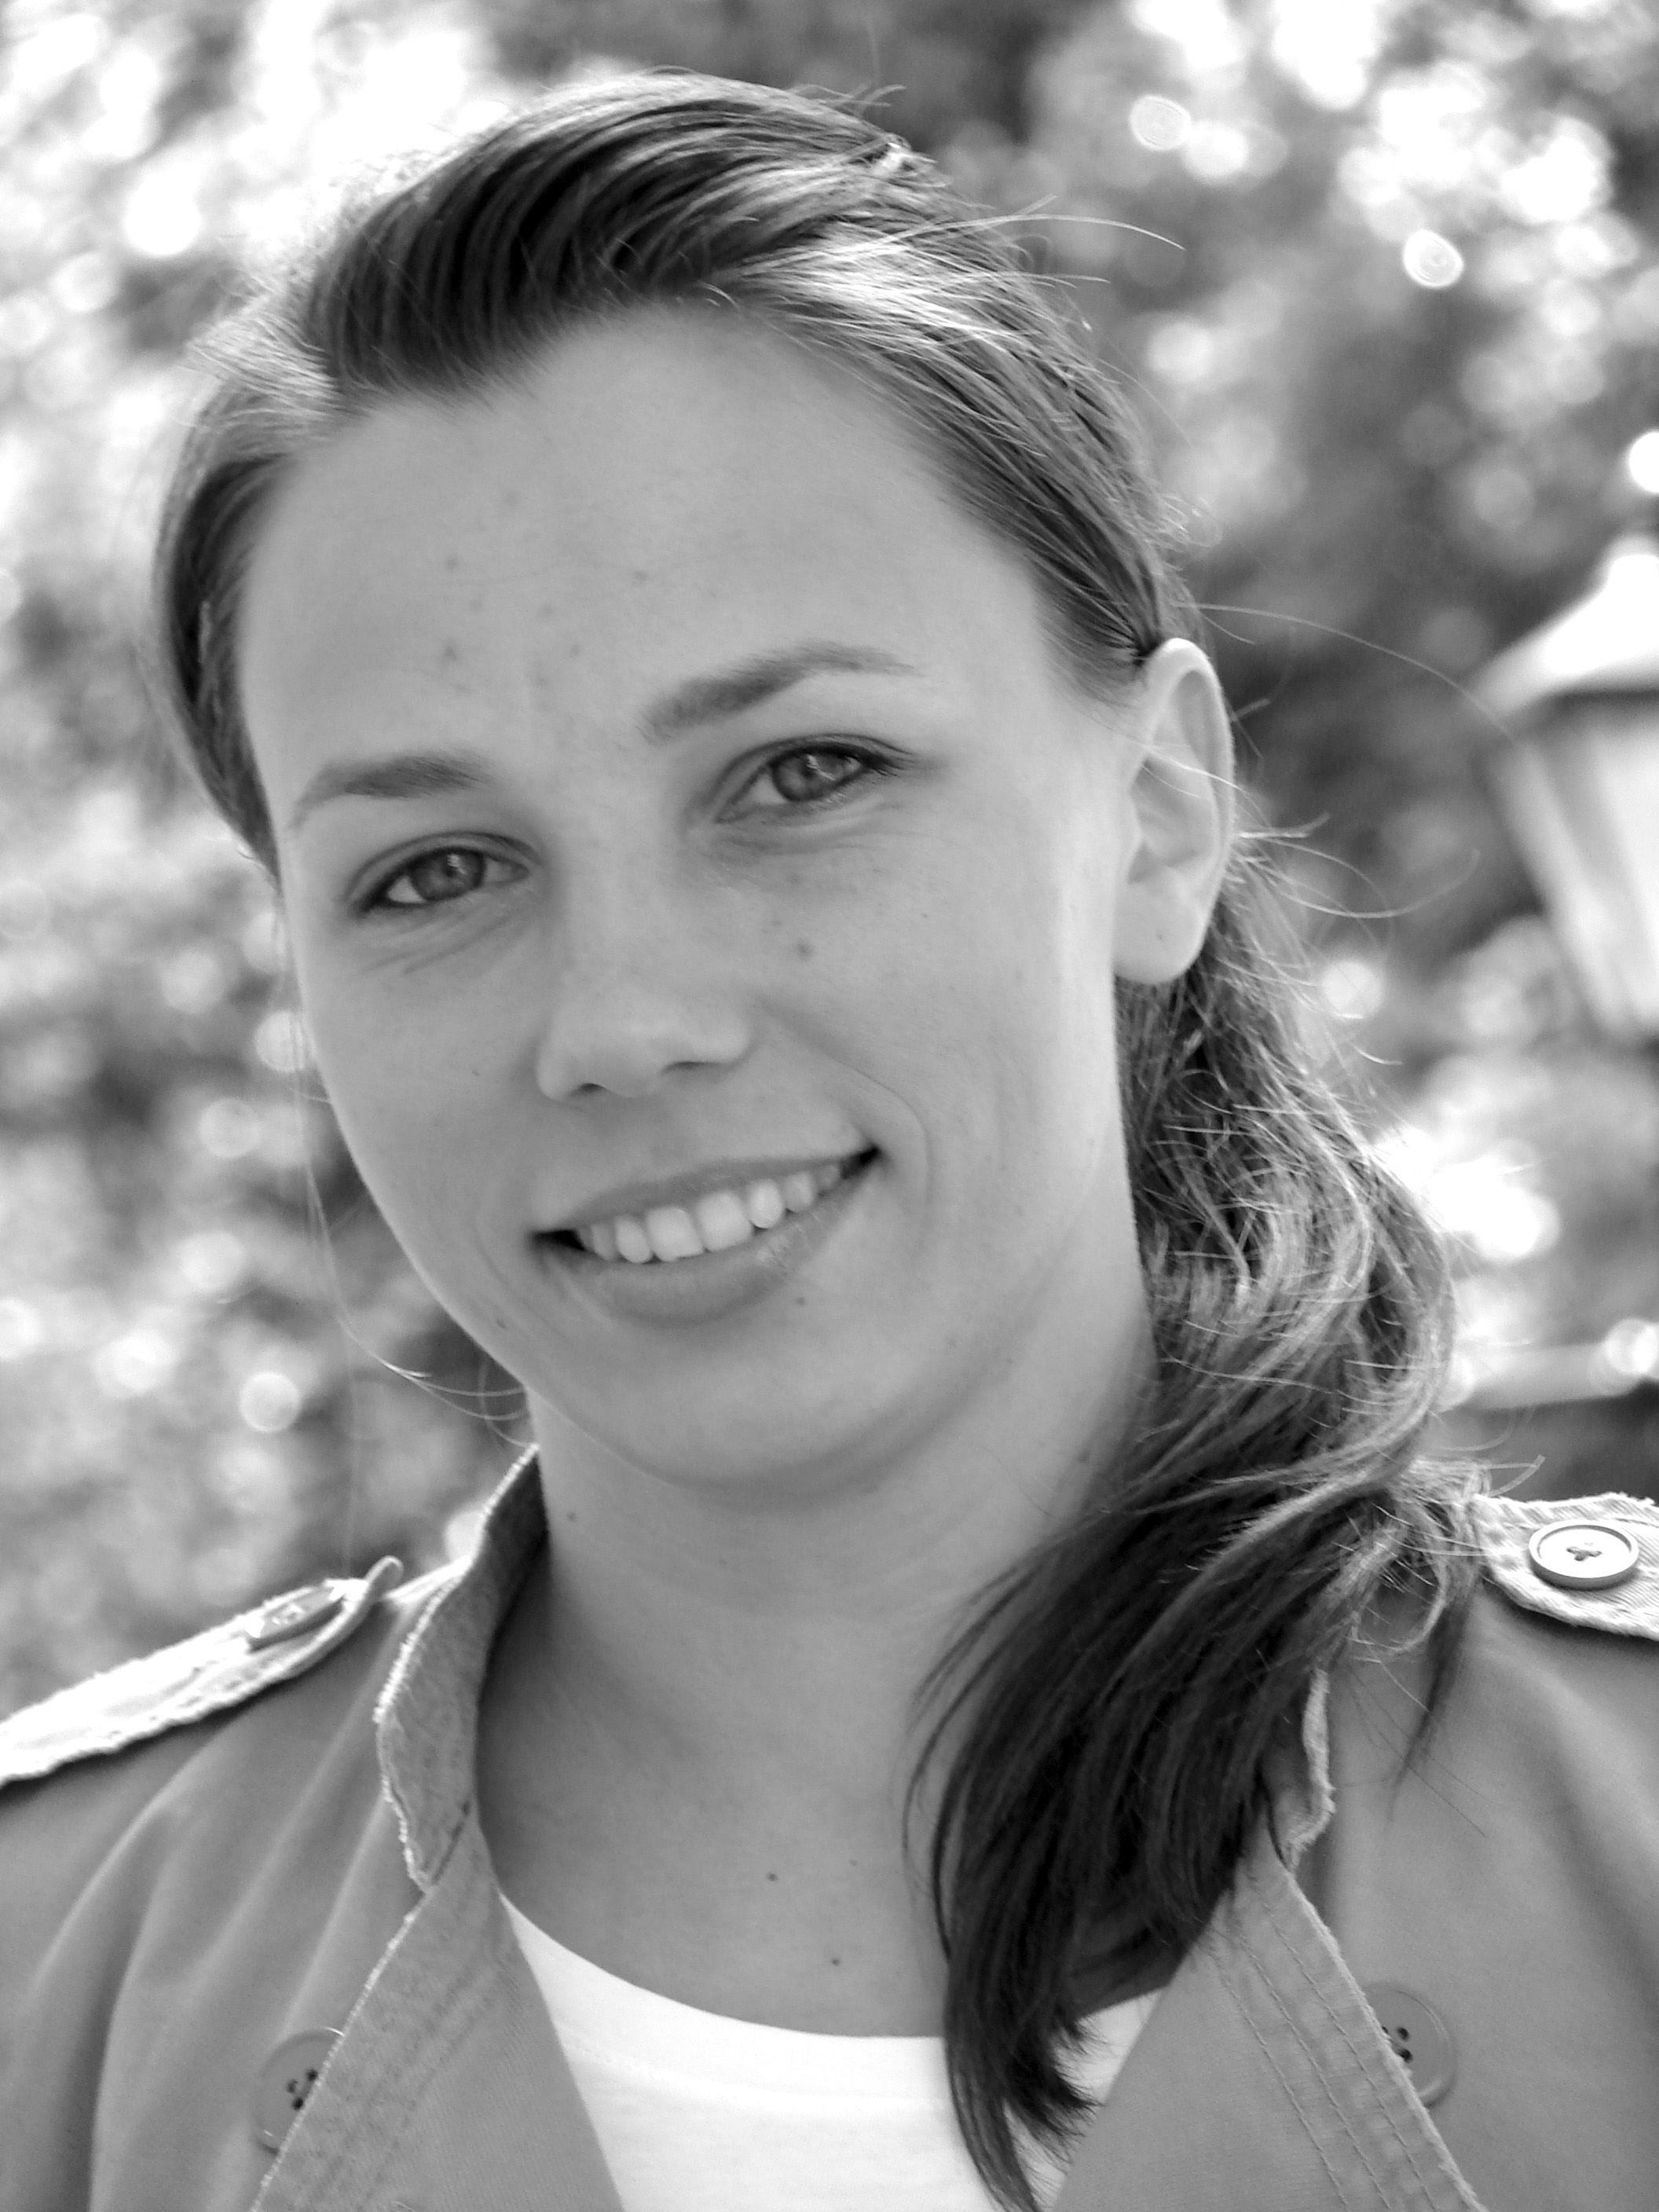 Julia    Julia has over 10 years experience teaching German and Russian working both one-to-one and in the group setting. She has an MA degree in Foreign Languages from Tartu University, Estonia, and furthered her language studies at the University of Duisbug-Essen in Germany.